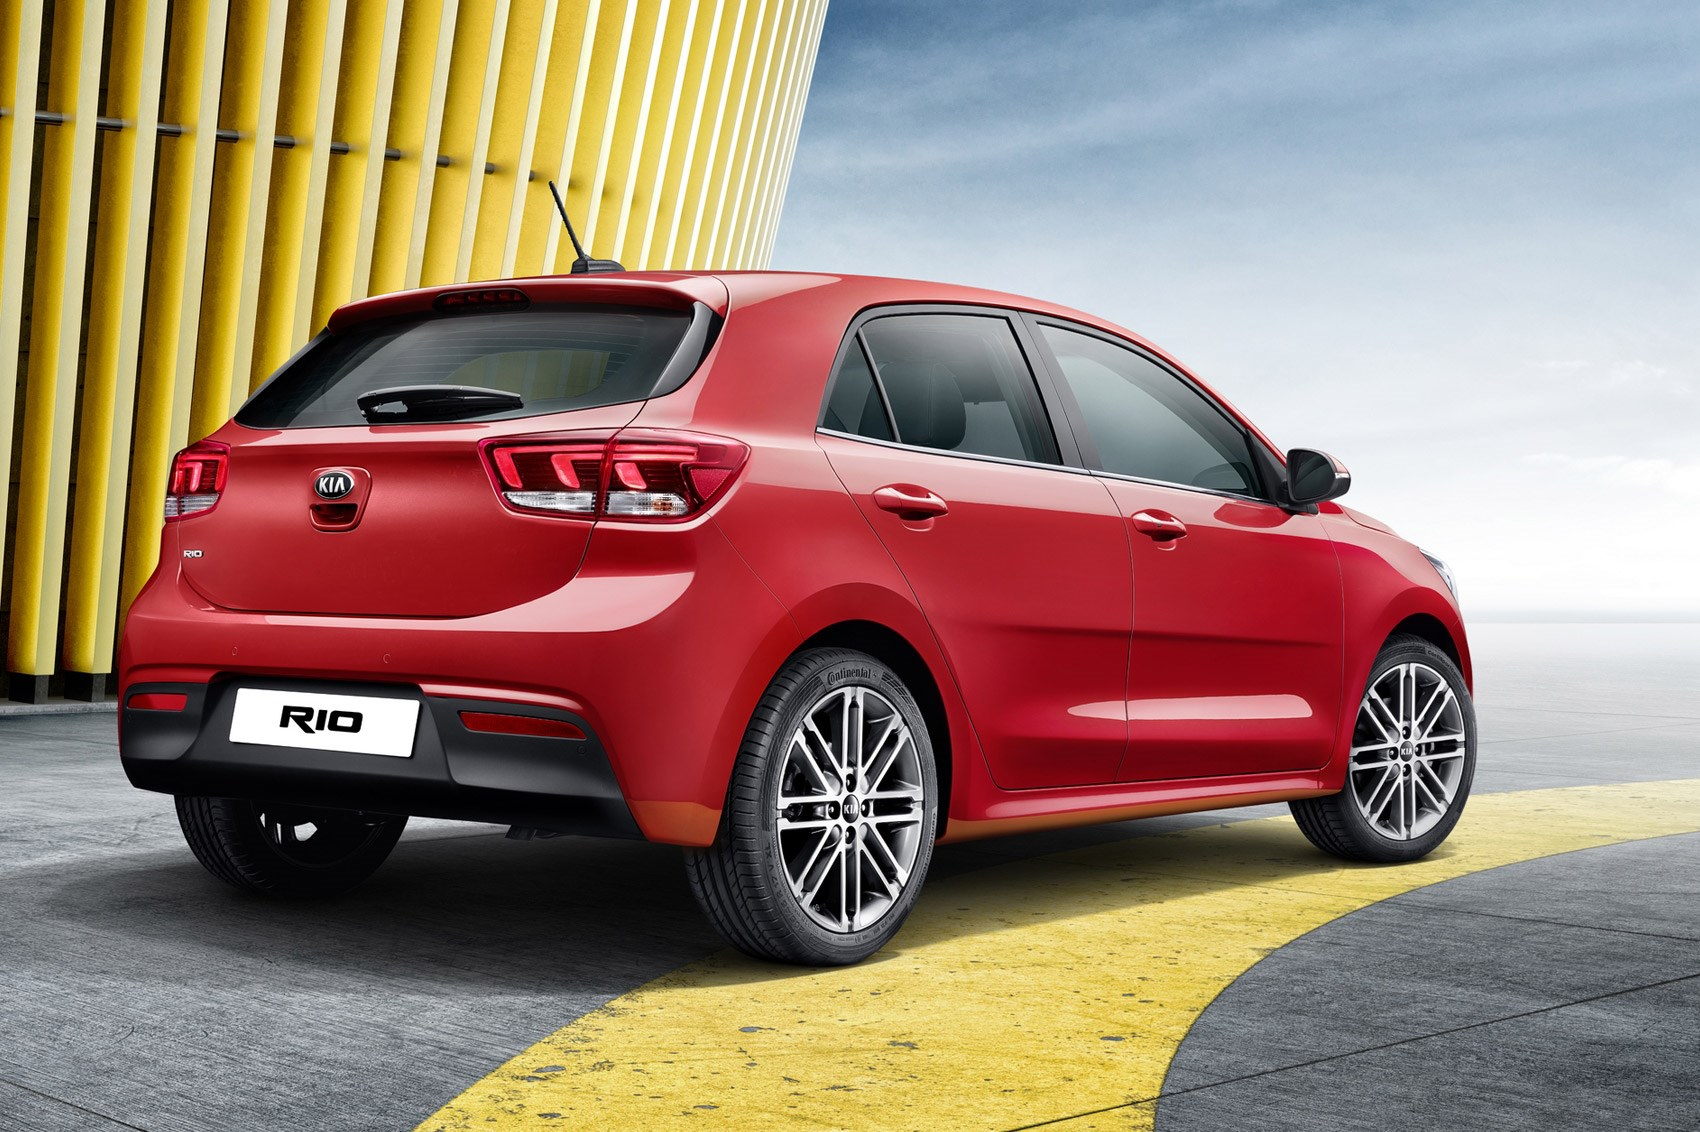 New Kia Rio Revealed Latest On Kia's Upcoming Fiesta